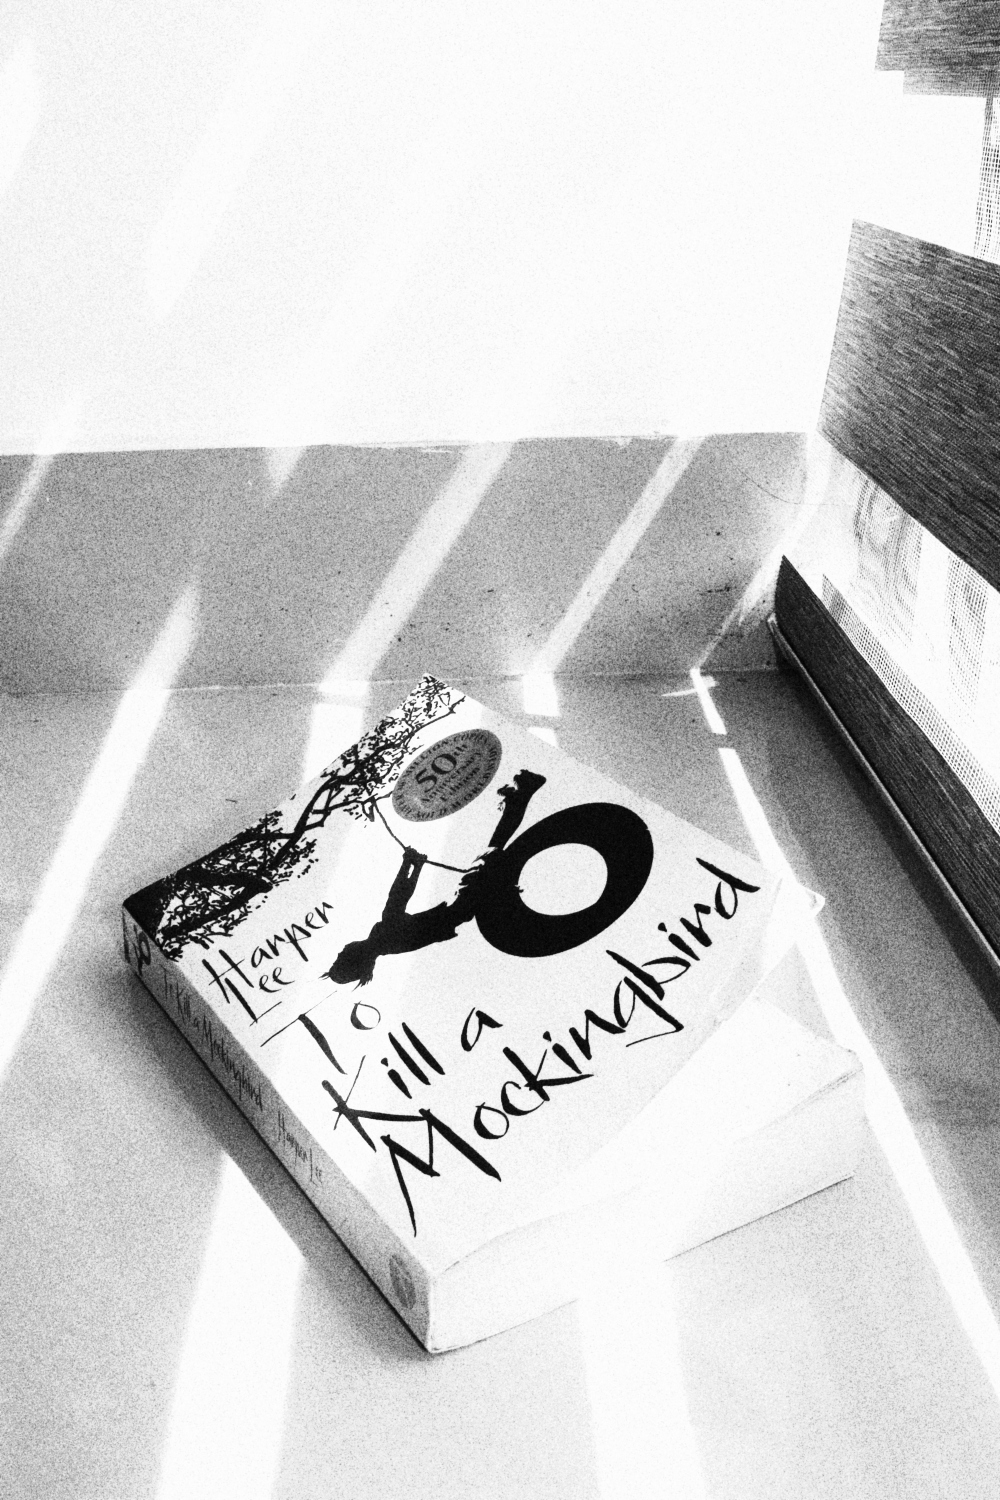 Booked for 100, #bookedfor100, to kill a mockingbird, #harperlee,